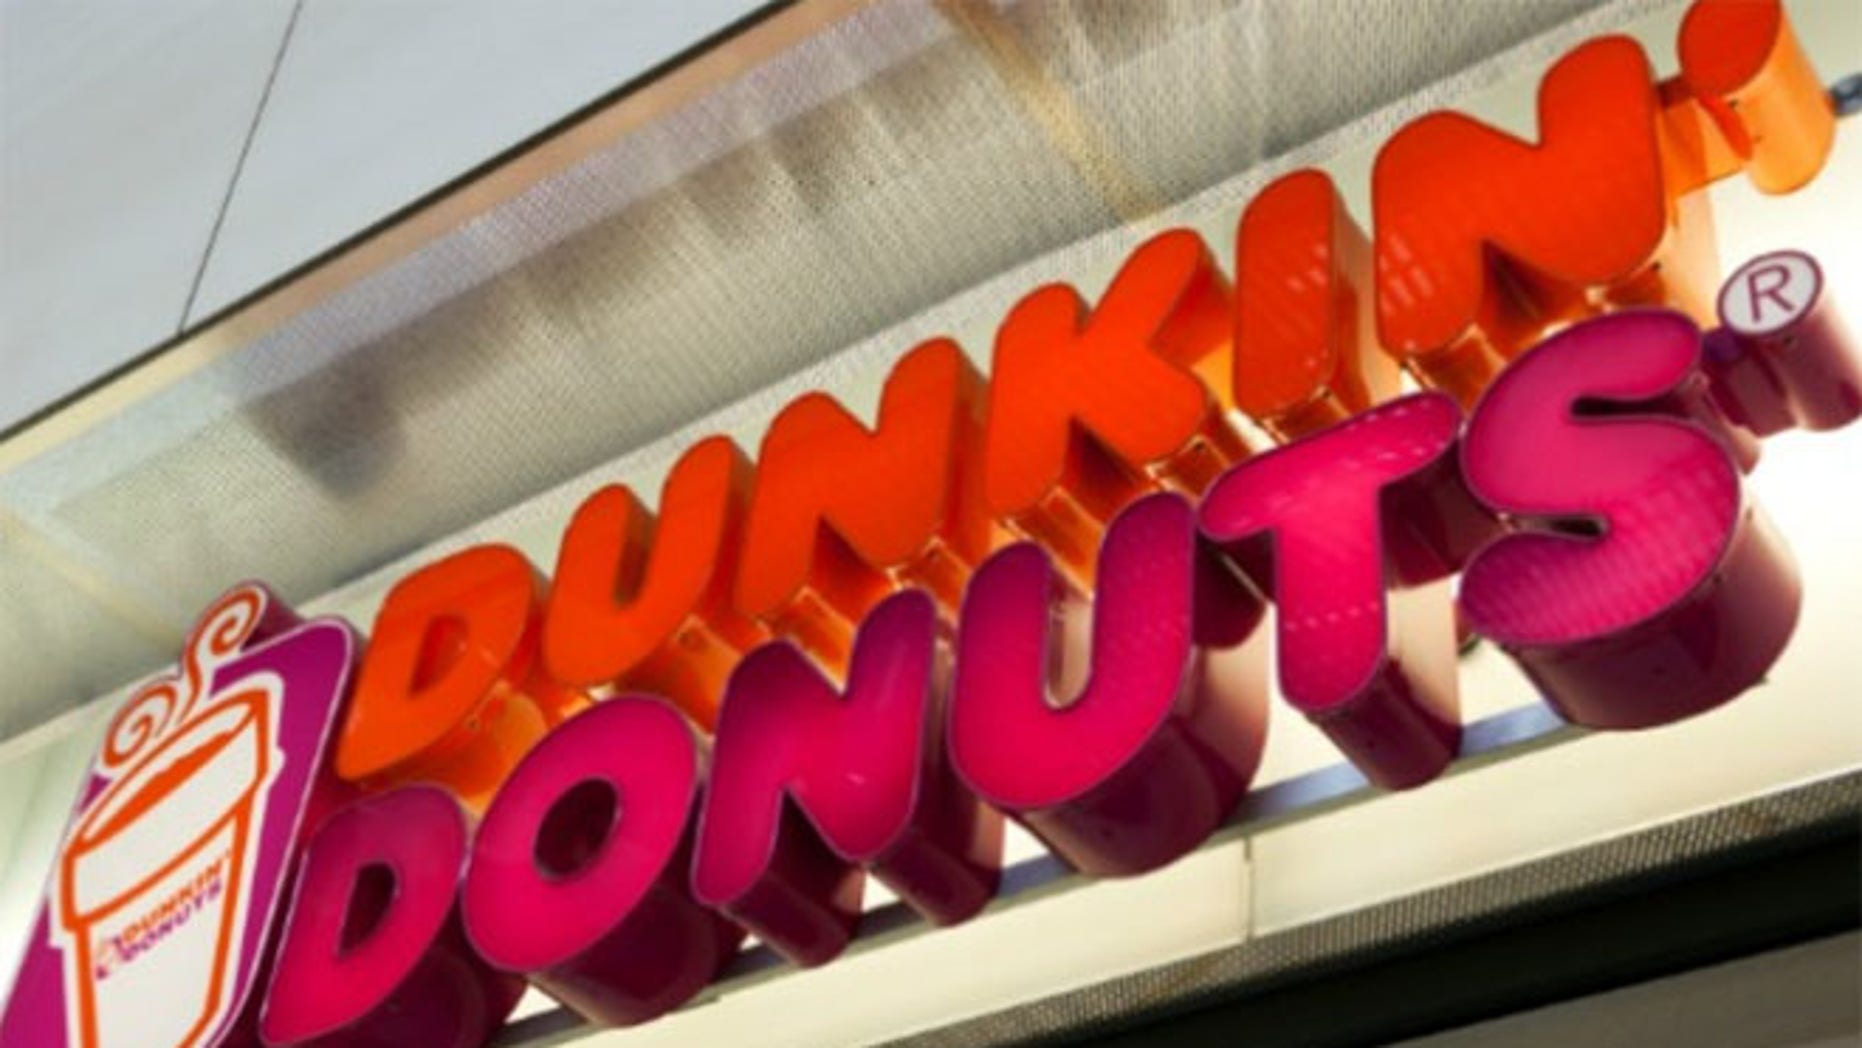 The restaurants to be closed in 2015 and 2016 are run by convenience store chain Speedway LLC, Dunkin' said. Speedway will continue to remain a franchisee of Dunkin' Brands.